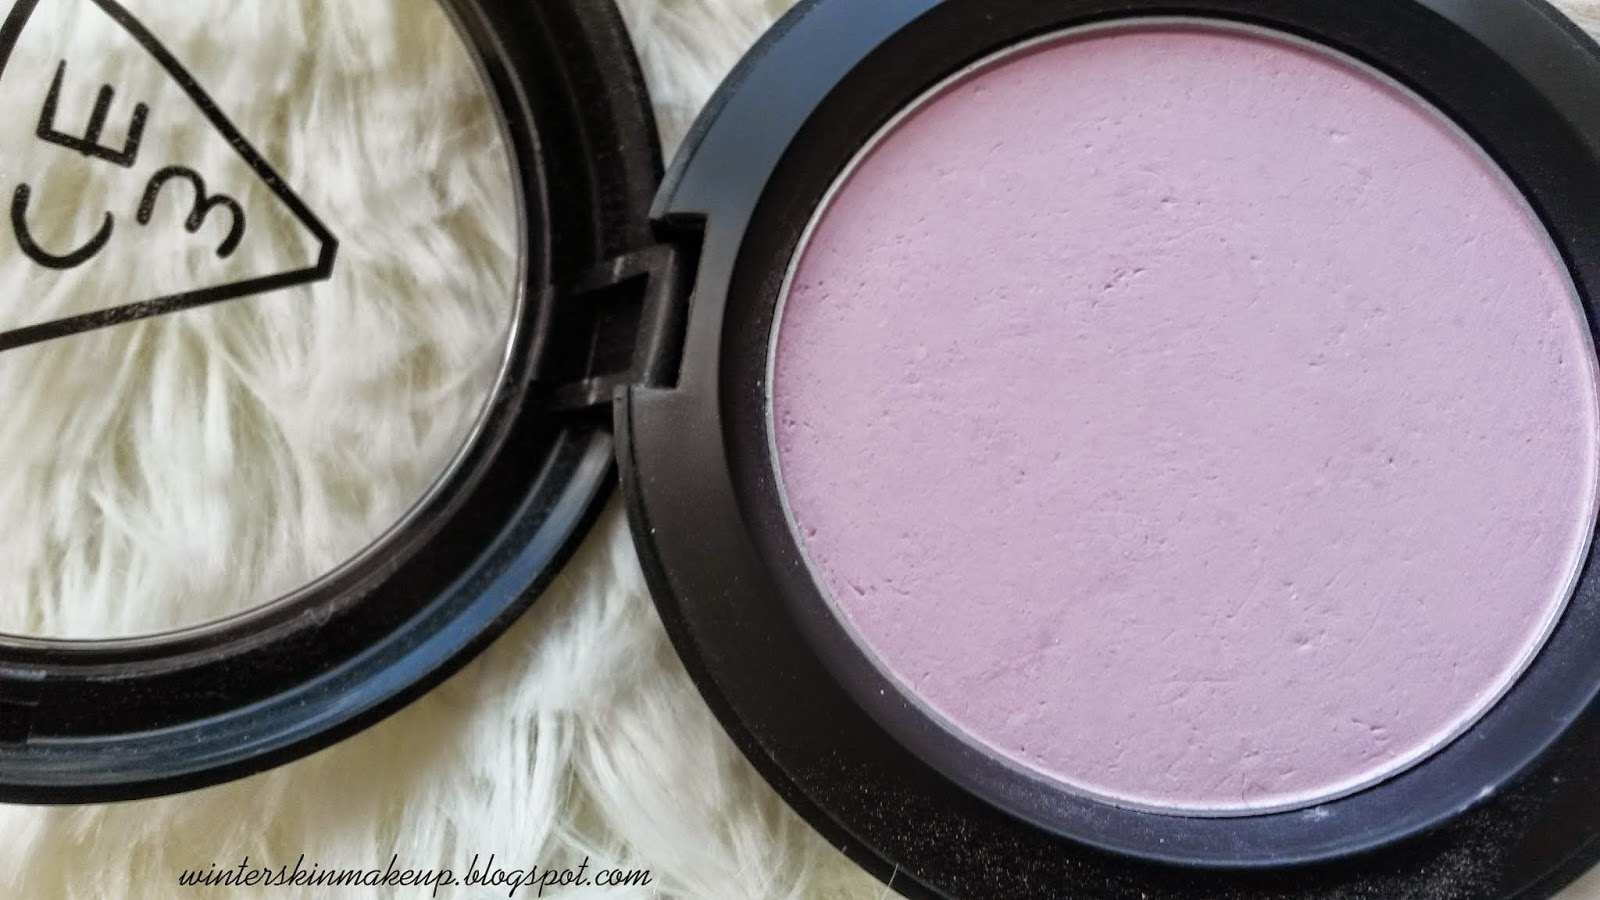 3 CONCEPT EYES Face Blush Whipping Cream Review